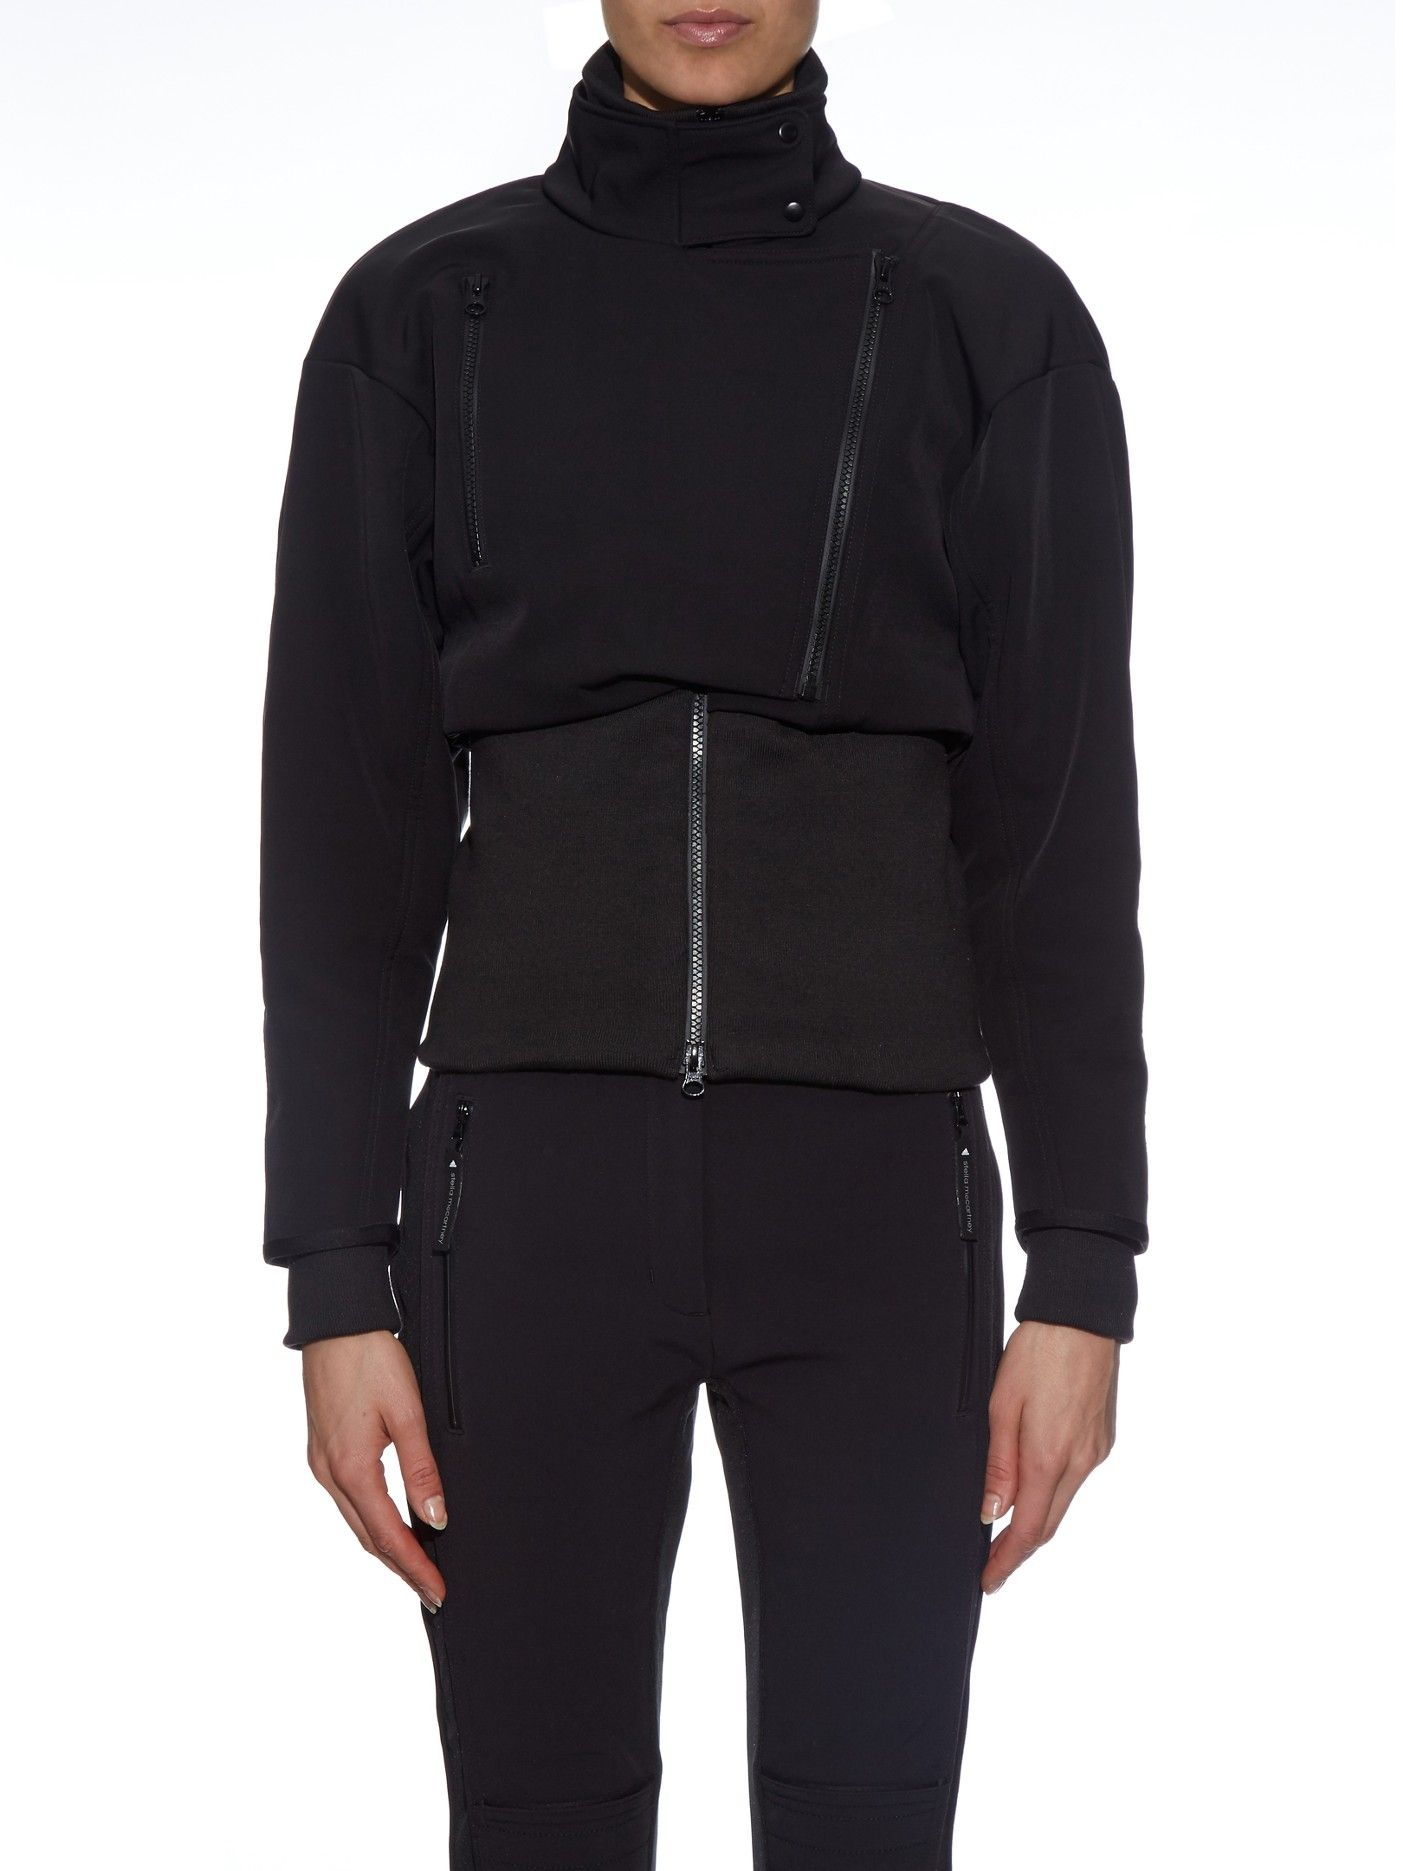 stella mccartney adidas ski jacket